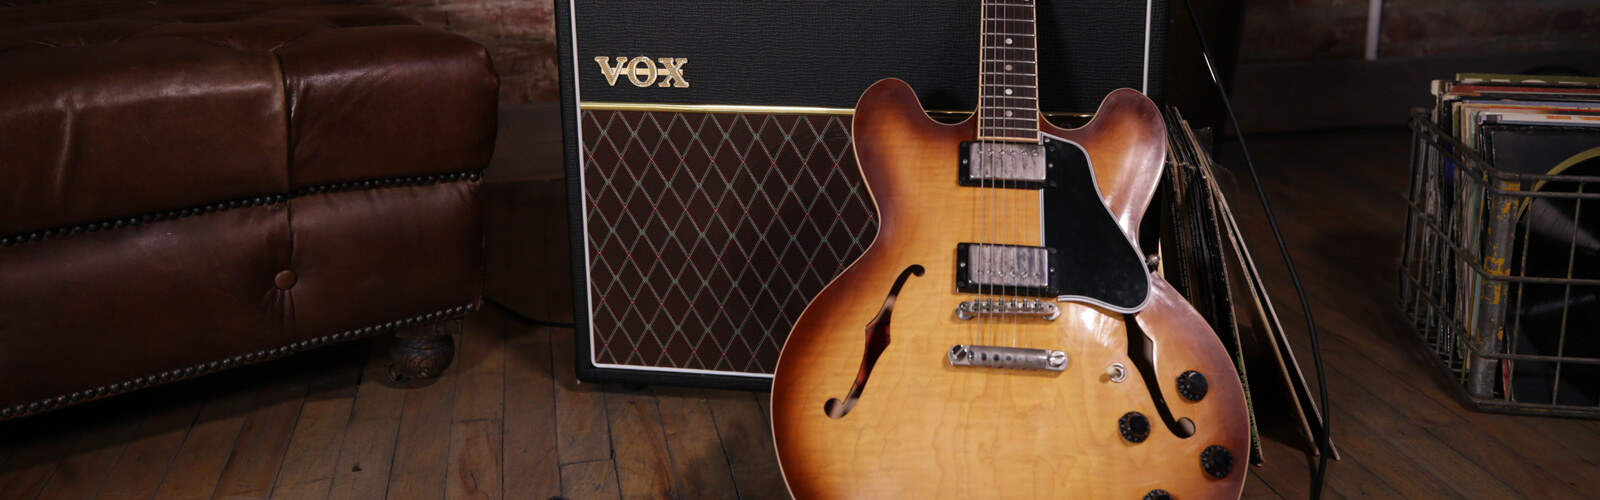 VOX amplifier and hollow body electric guitar